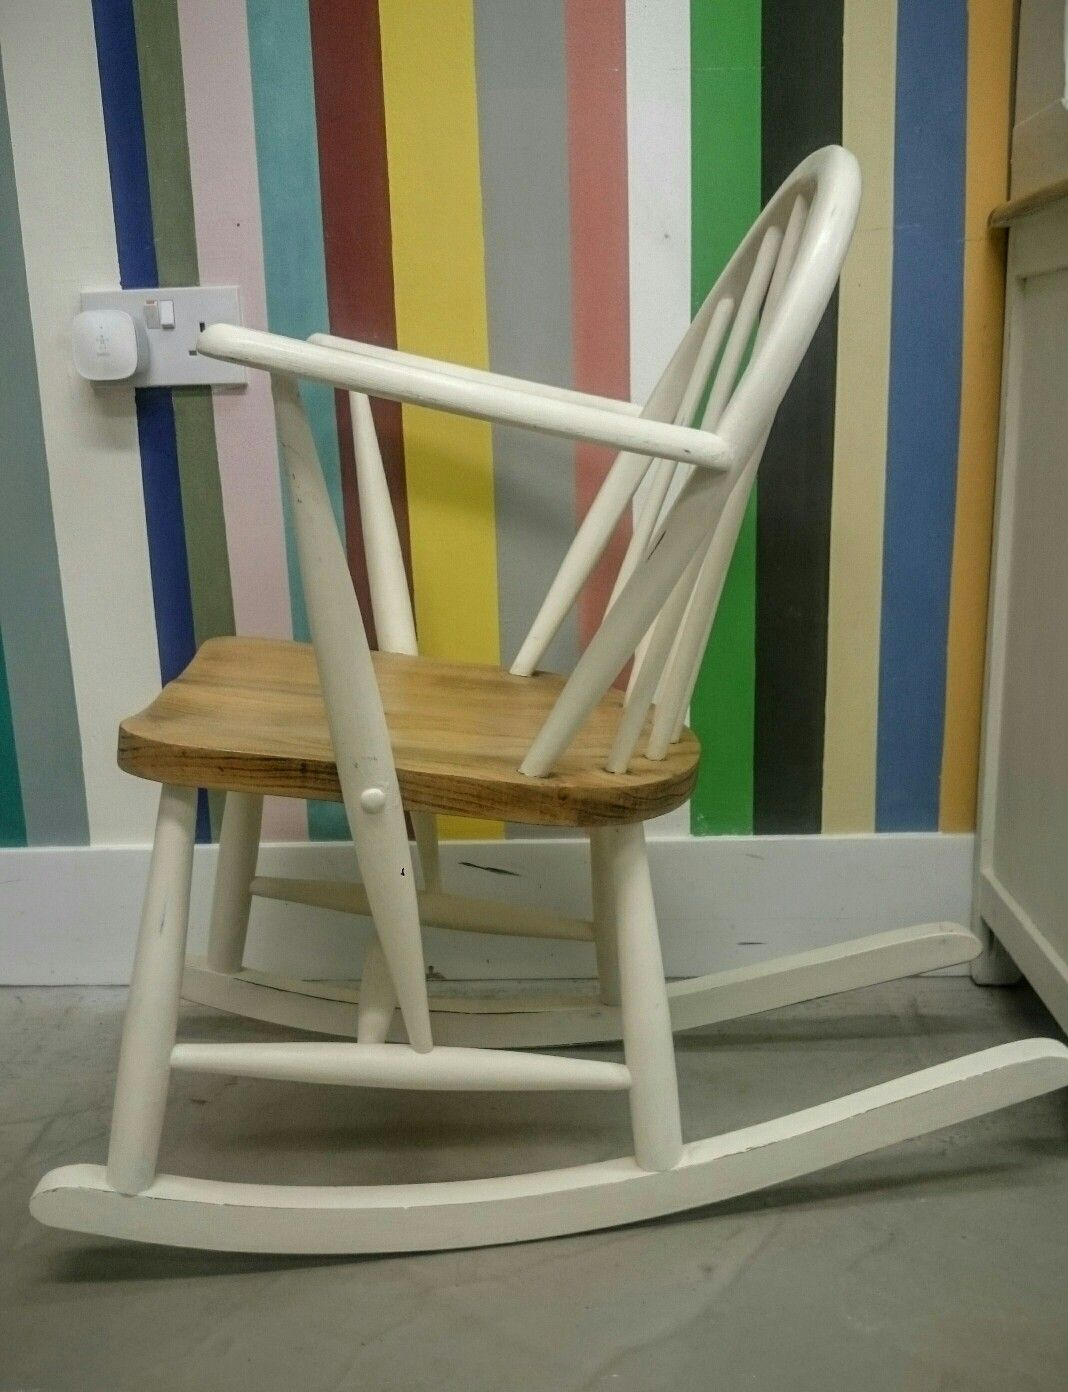 Newport Rocking Chair Air Accessories Refurbished Ercol On Sale The Selection